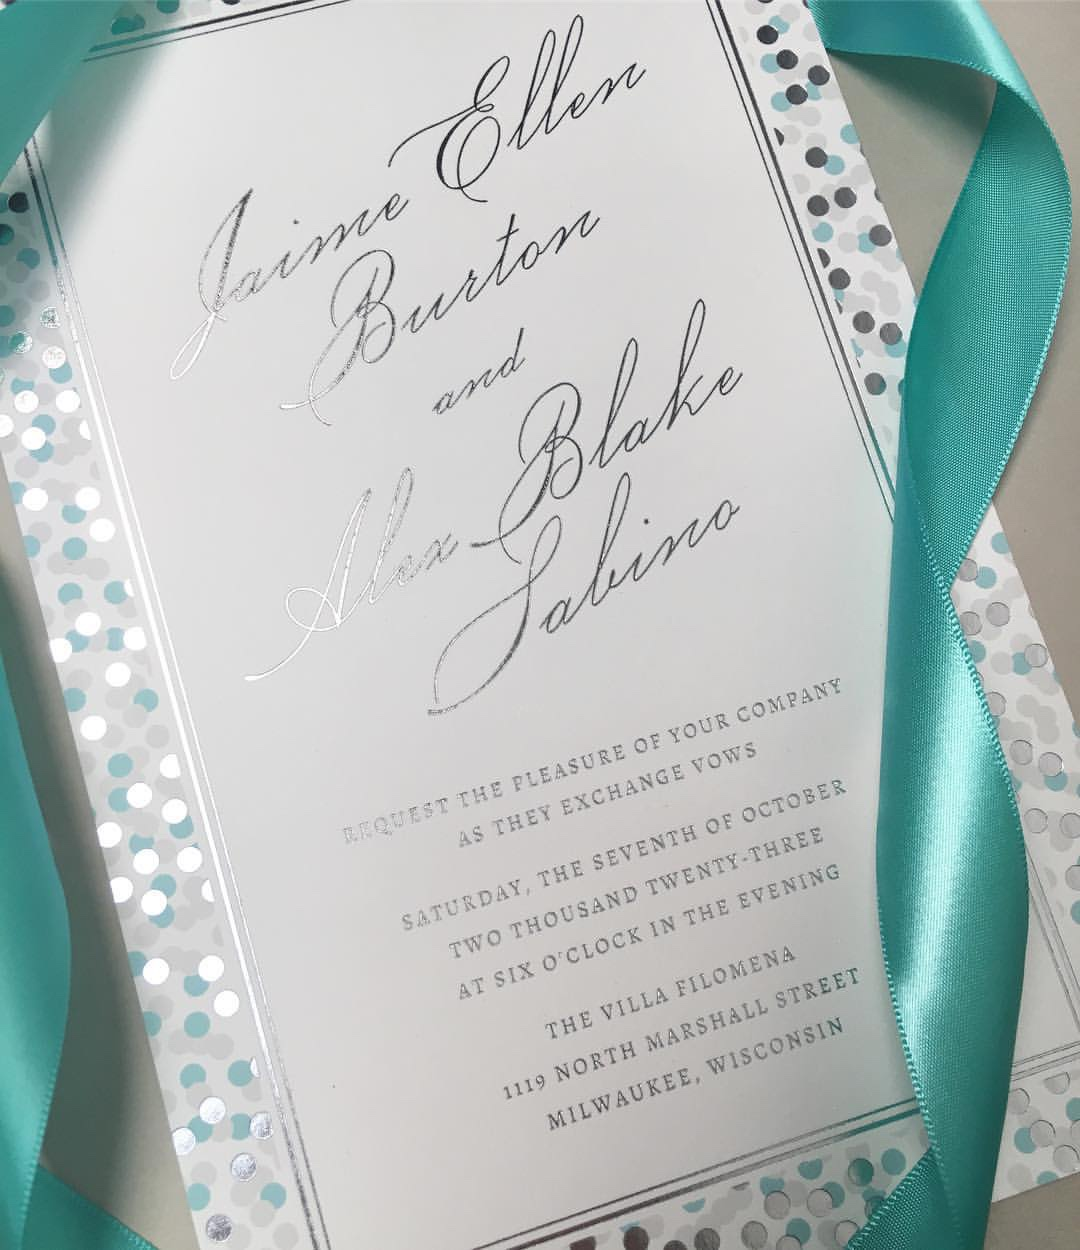 Beautiful foiled confetti is the border of this modern wedding invitation